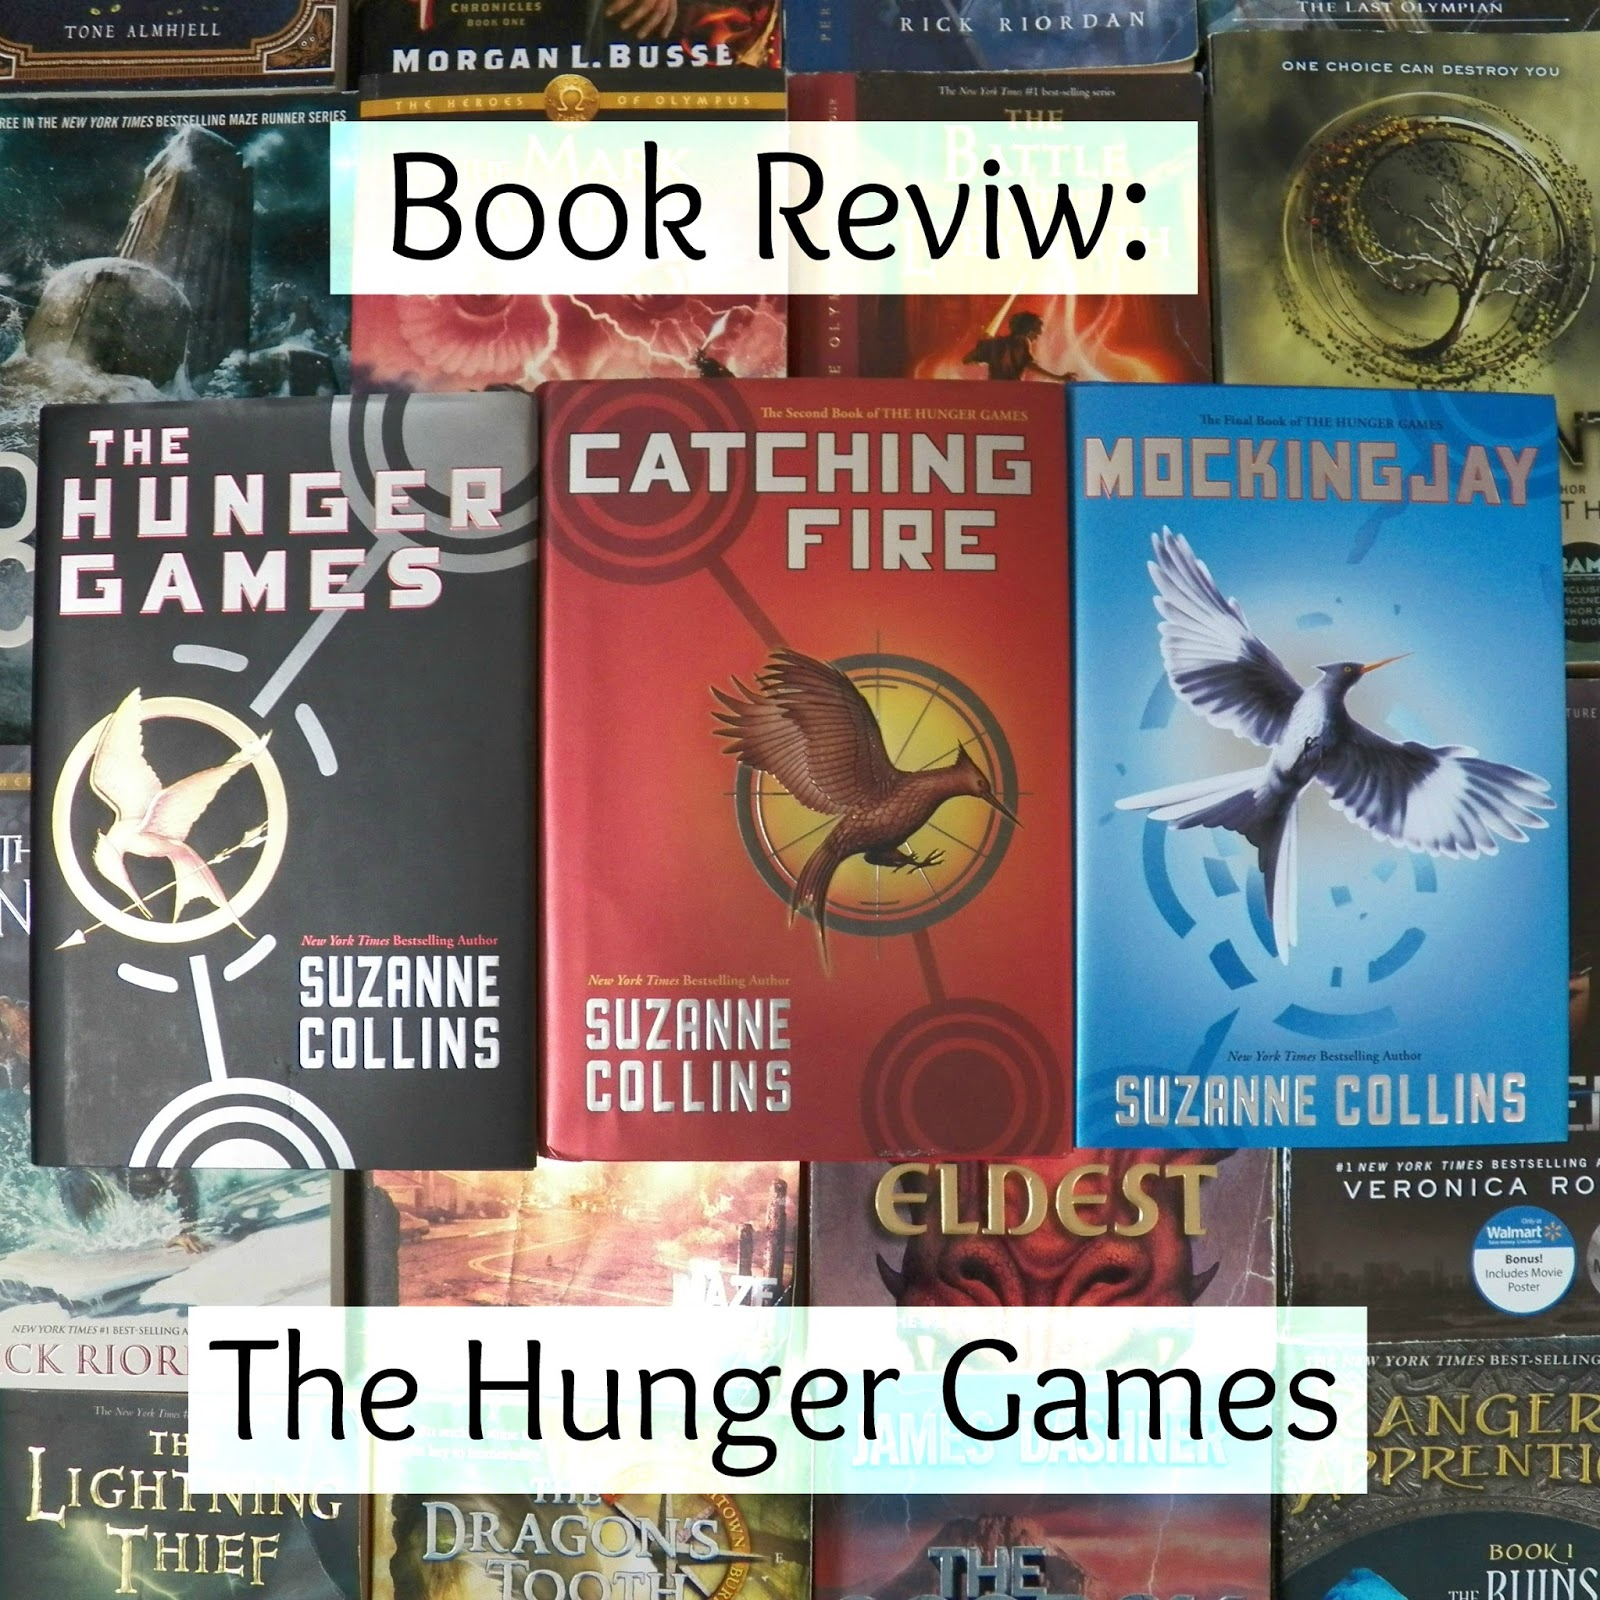 hunger games film review essay Film analysis | the hunger games | wilbur wright college 1 5/6/2013 chigaco, illinois, usa pereira 1 luciana pereira english 101 g professor bridget roche wilbur wright college final draft of film essay film analysis: the hunger games technology is one of the most marvelous things of nowadays, bringing to people simple things that make life.